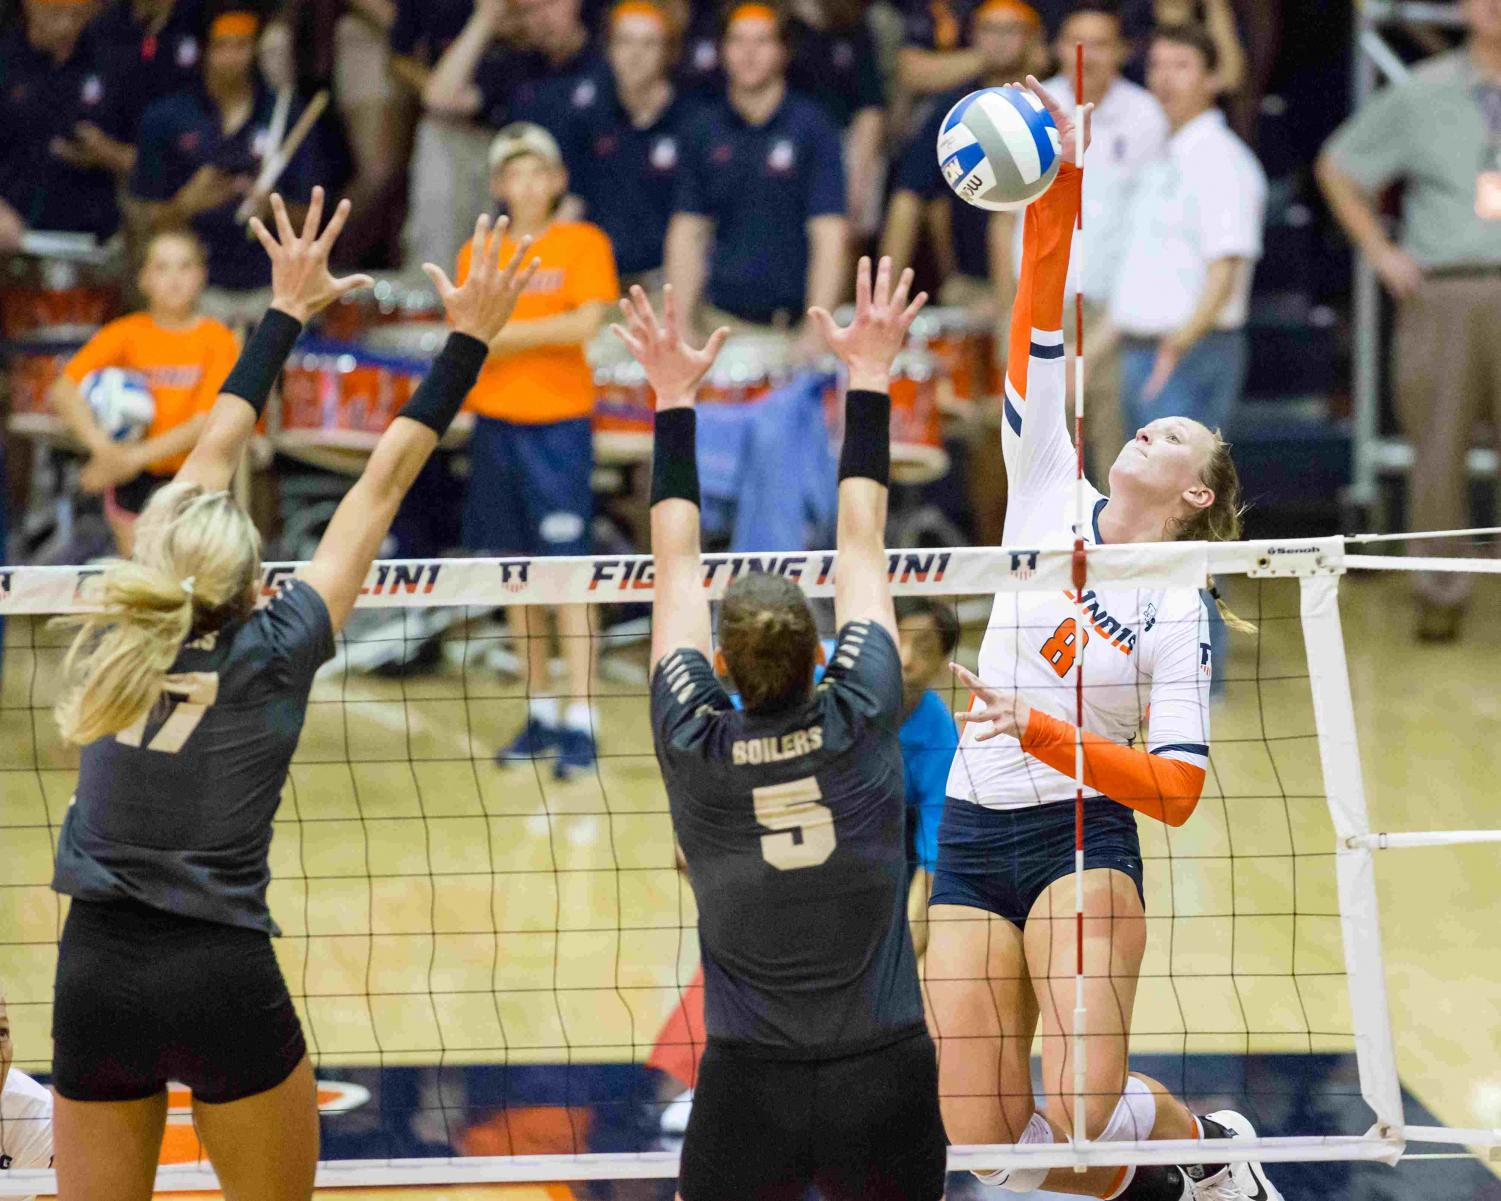 Illinois outside hitter Beth Prince (8) hits the ball during the match against Purdue at Huff Hall on Friday, October 6. The Illini lost 3-0.